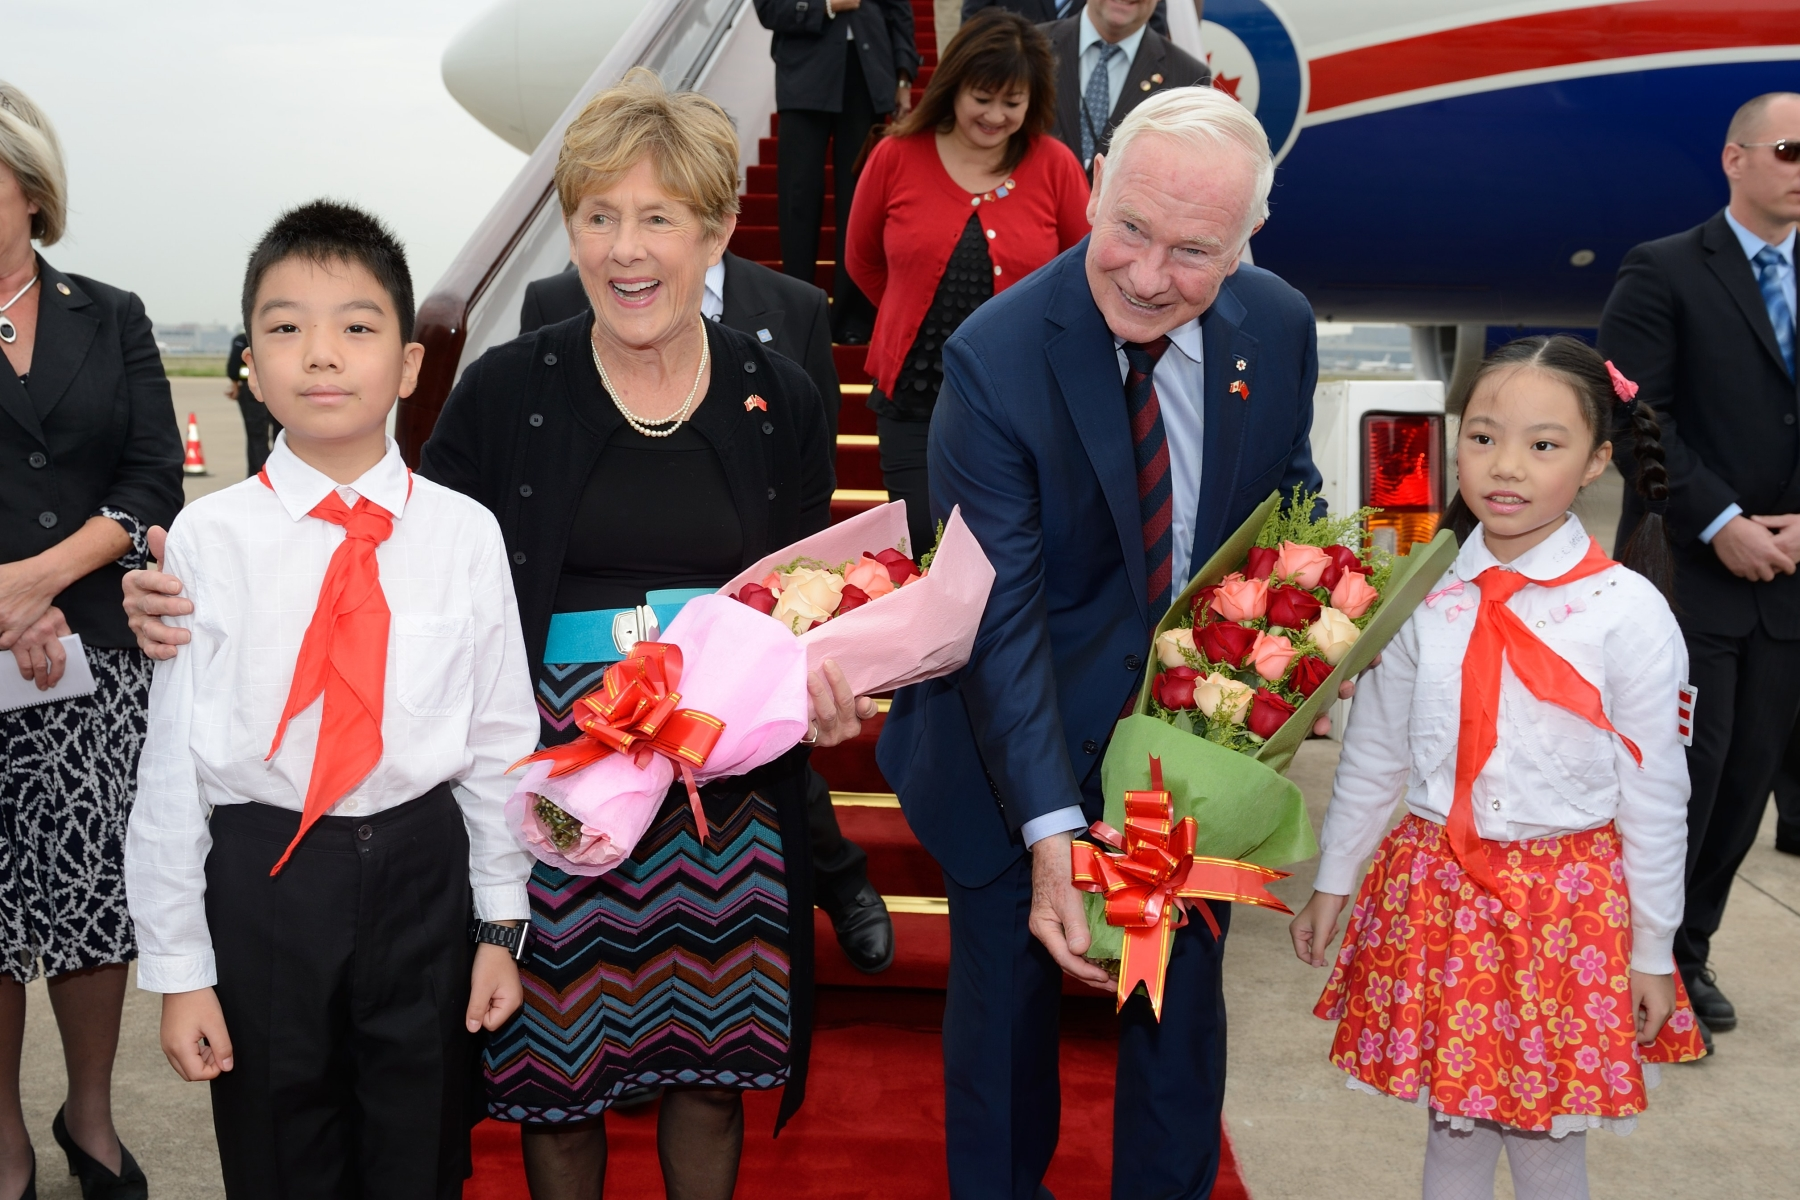 Upon their arrival in Shanghai, Their Excellencies were offered flowers by children.